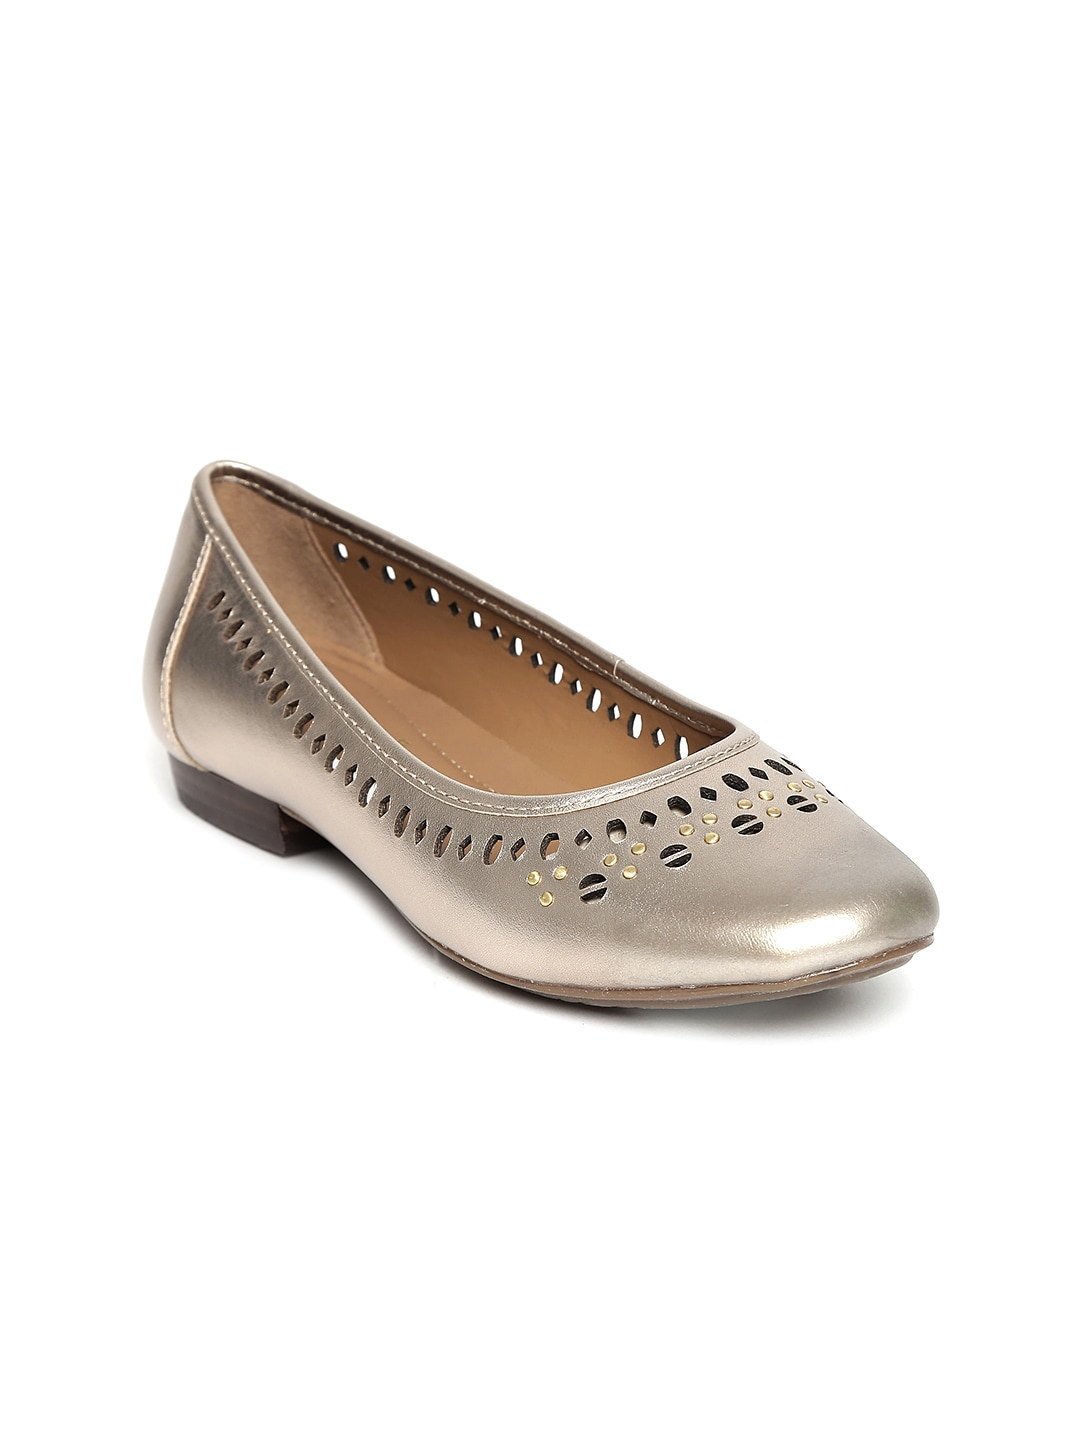 Clarks Women Gold-Toned Leather Ballerinas